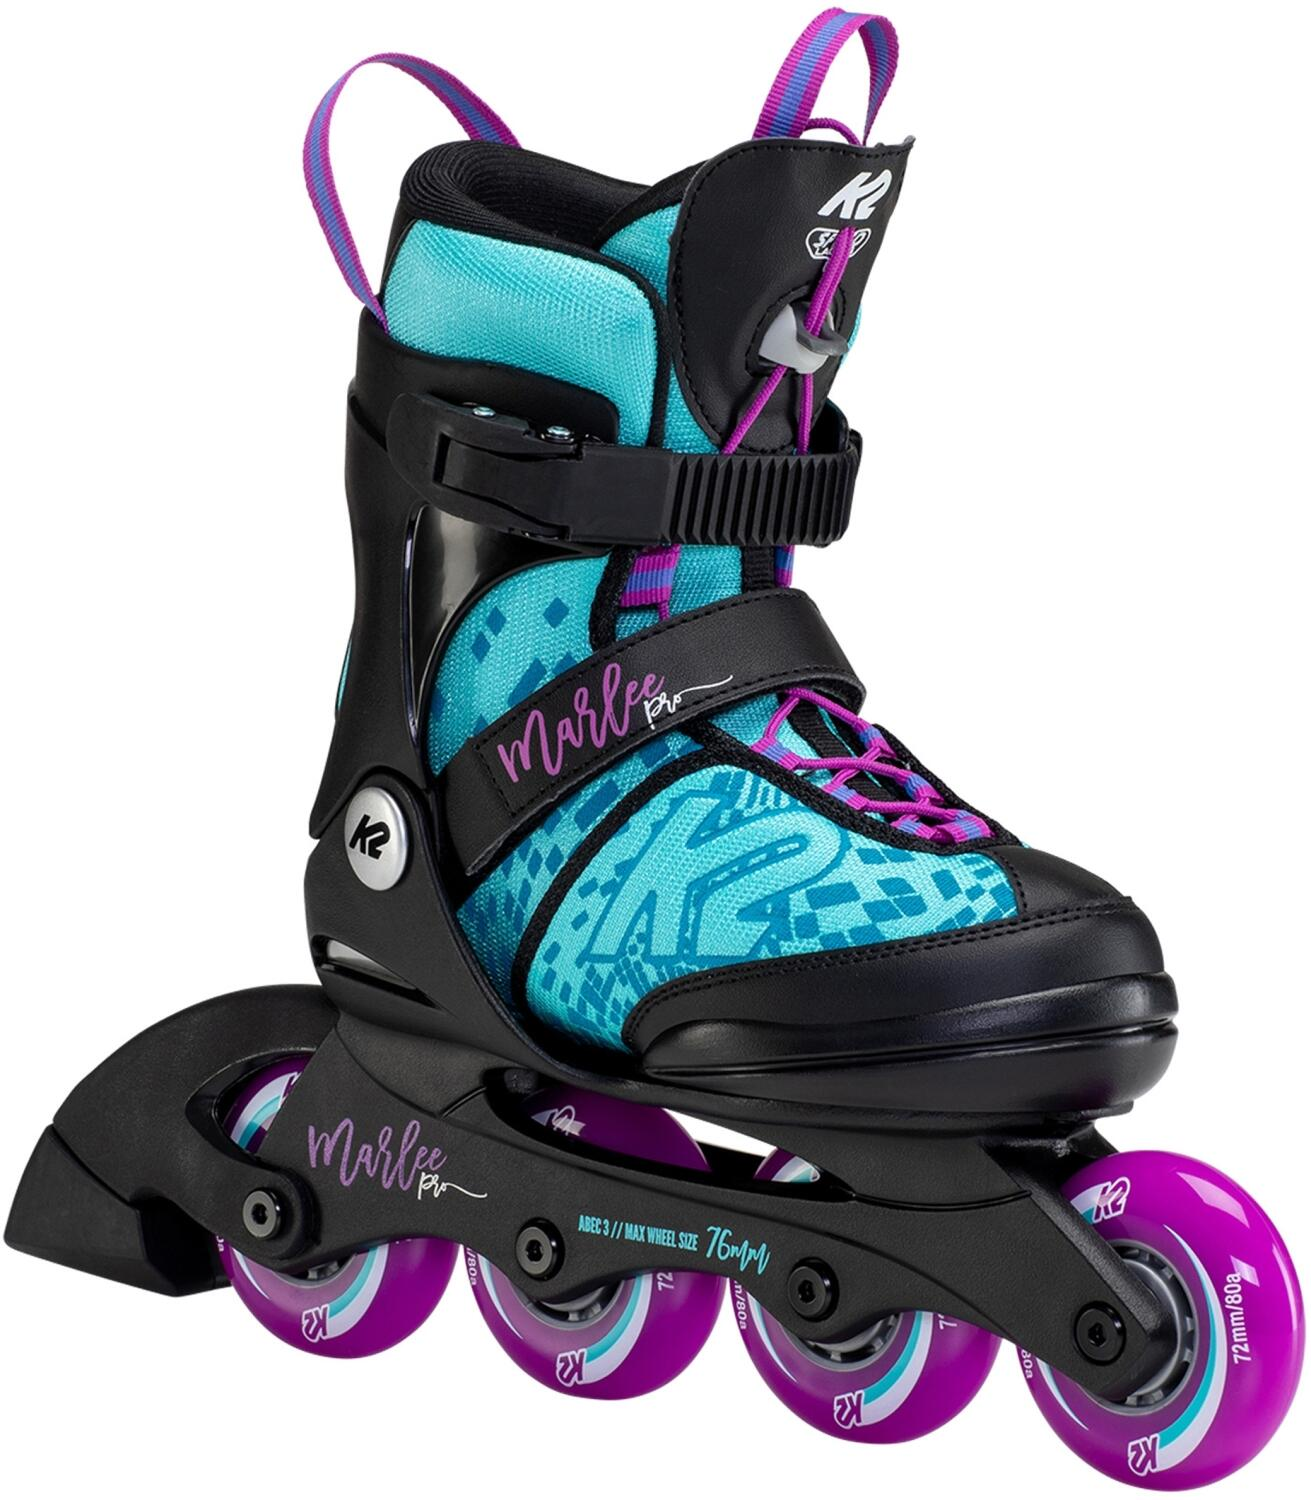 K2 Marlee Pro Inlineskate Girl (Größe 35.0 40.0 (L), light blue purple (72 er Räder))